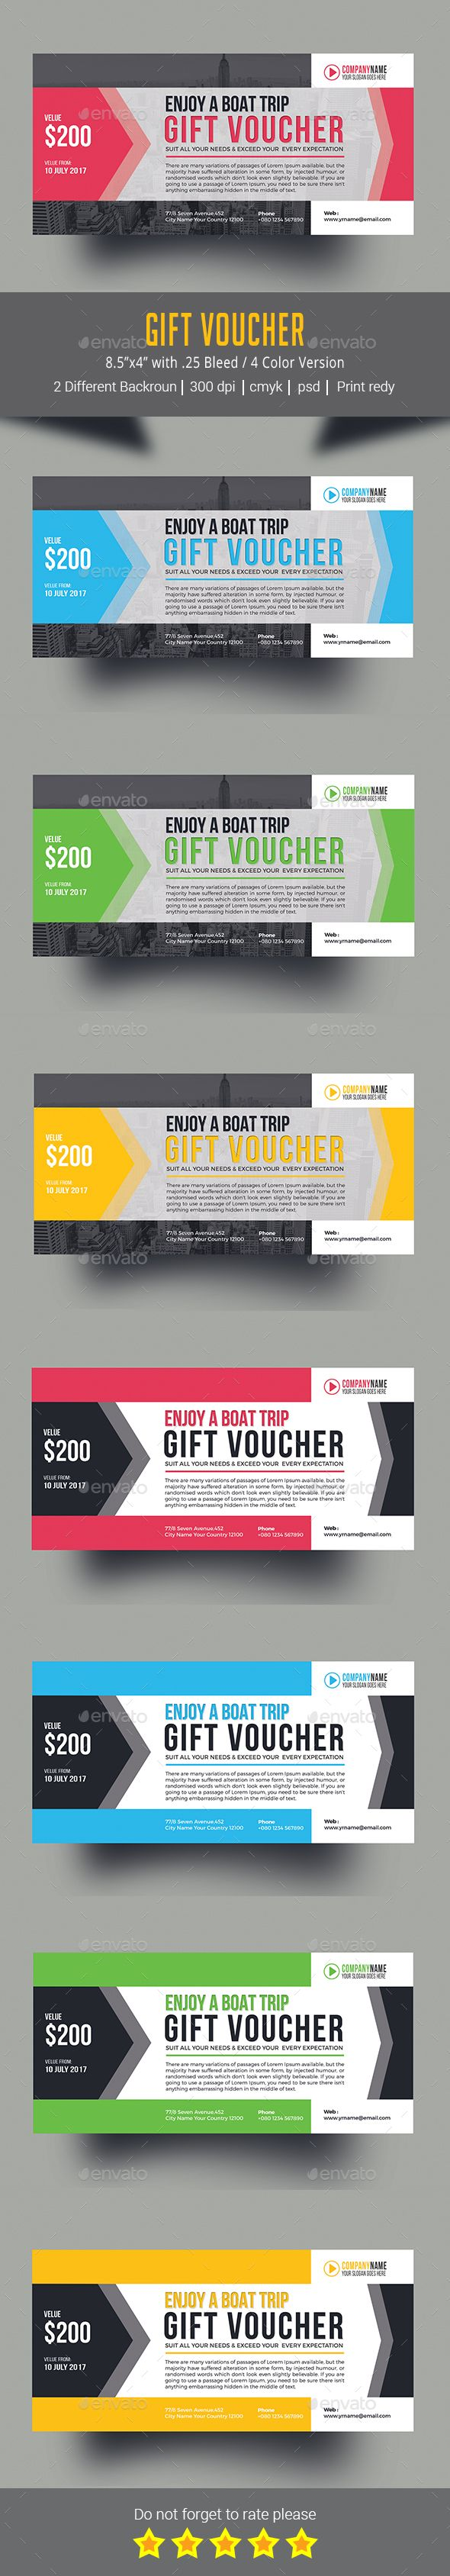 25 best gift voucher design templates images on pinterest design gift voucher design template loyalty cards cards invites template psd download here yelopaper Images